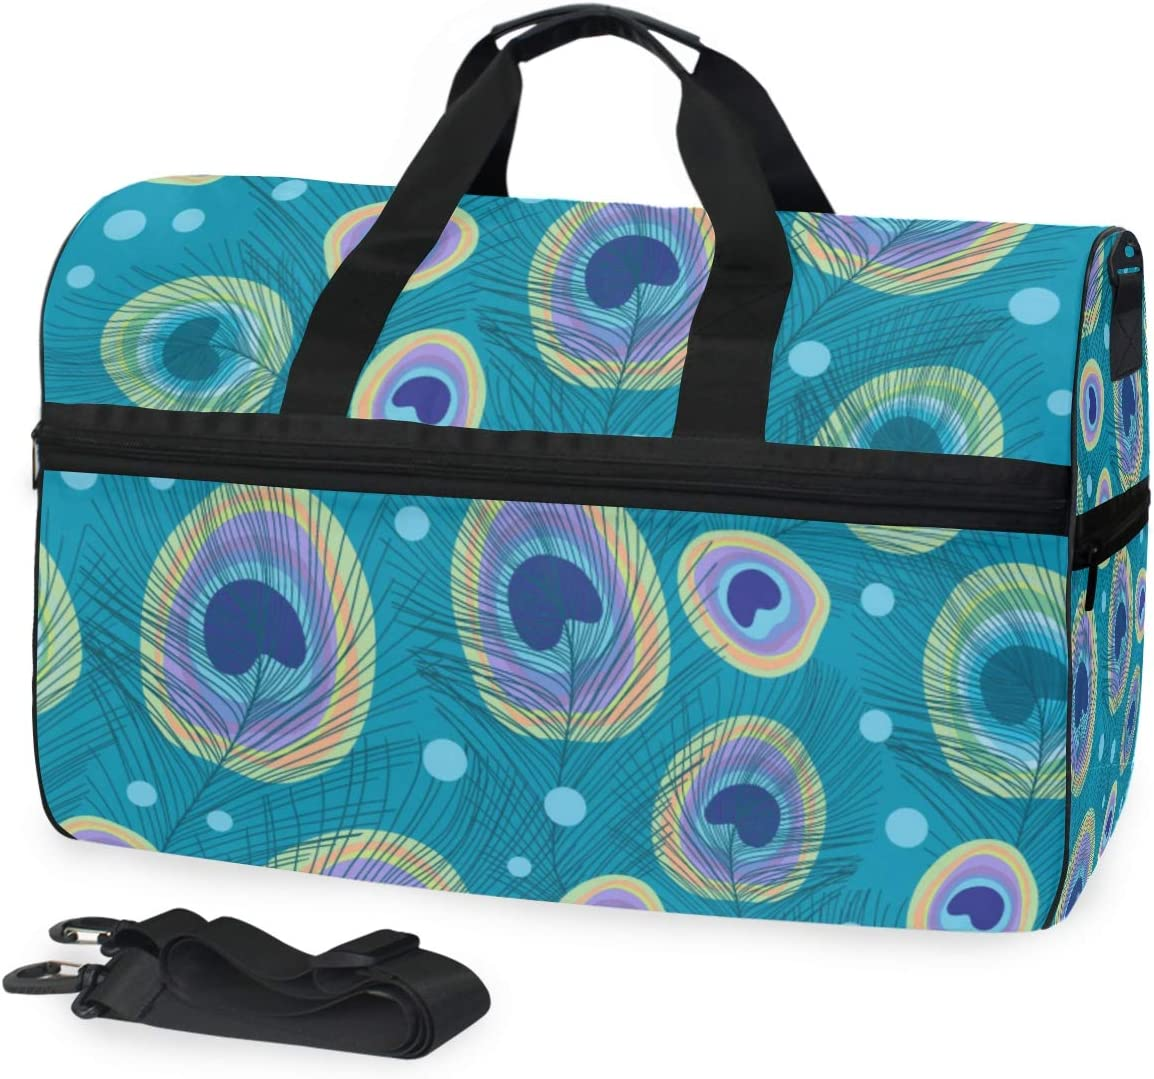 Stylish Peacock Feathers With Dots Sports Gym Bag with Shoes Compartment Travel Duffel Bag for Men and Women